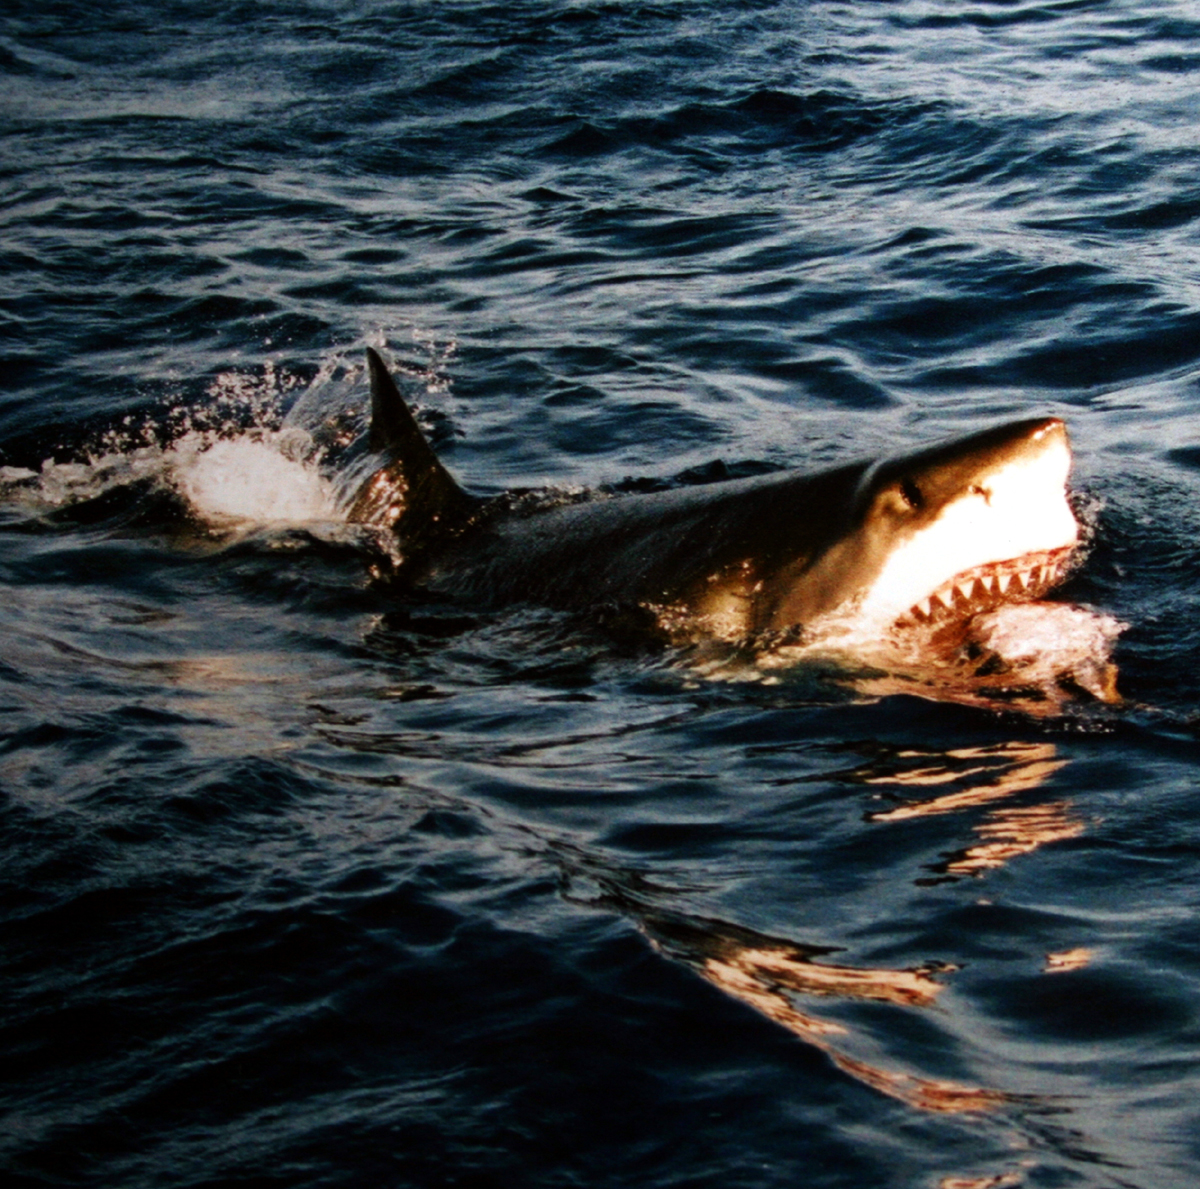 How much do white sharks eat? A white shark chasing after bait